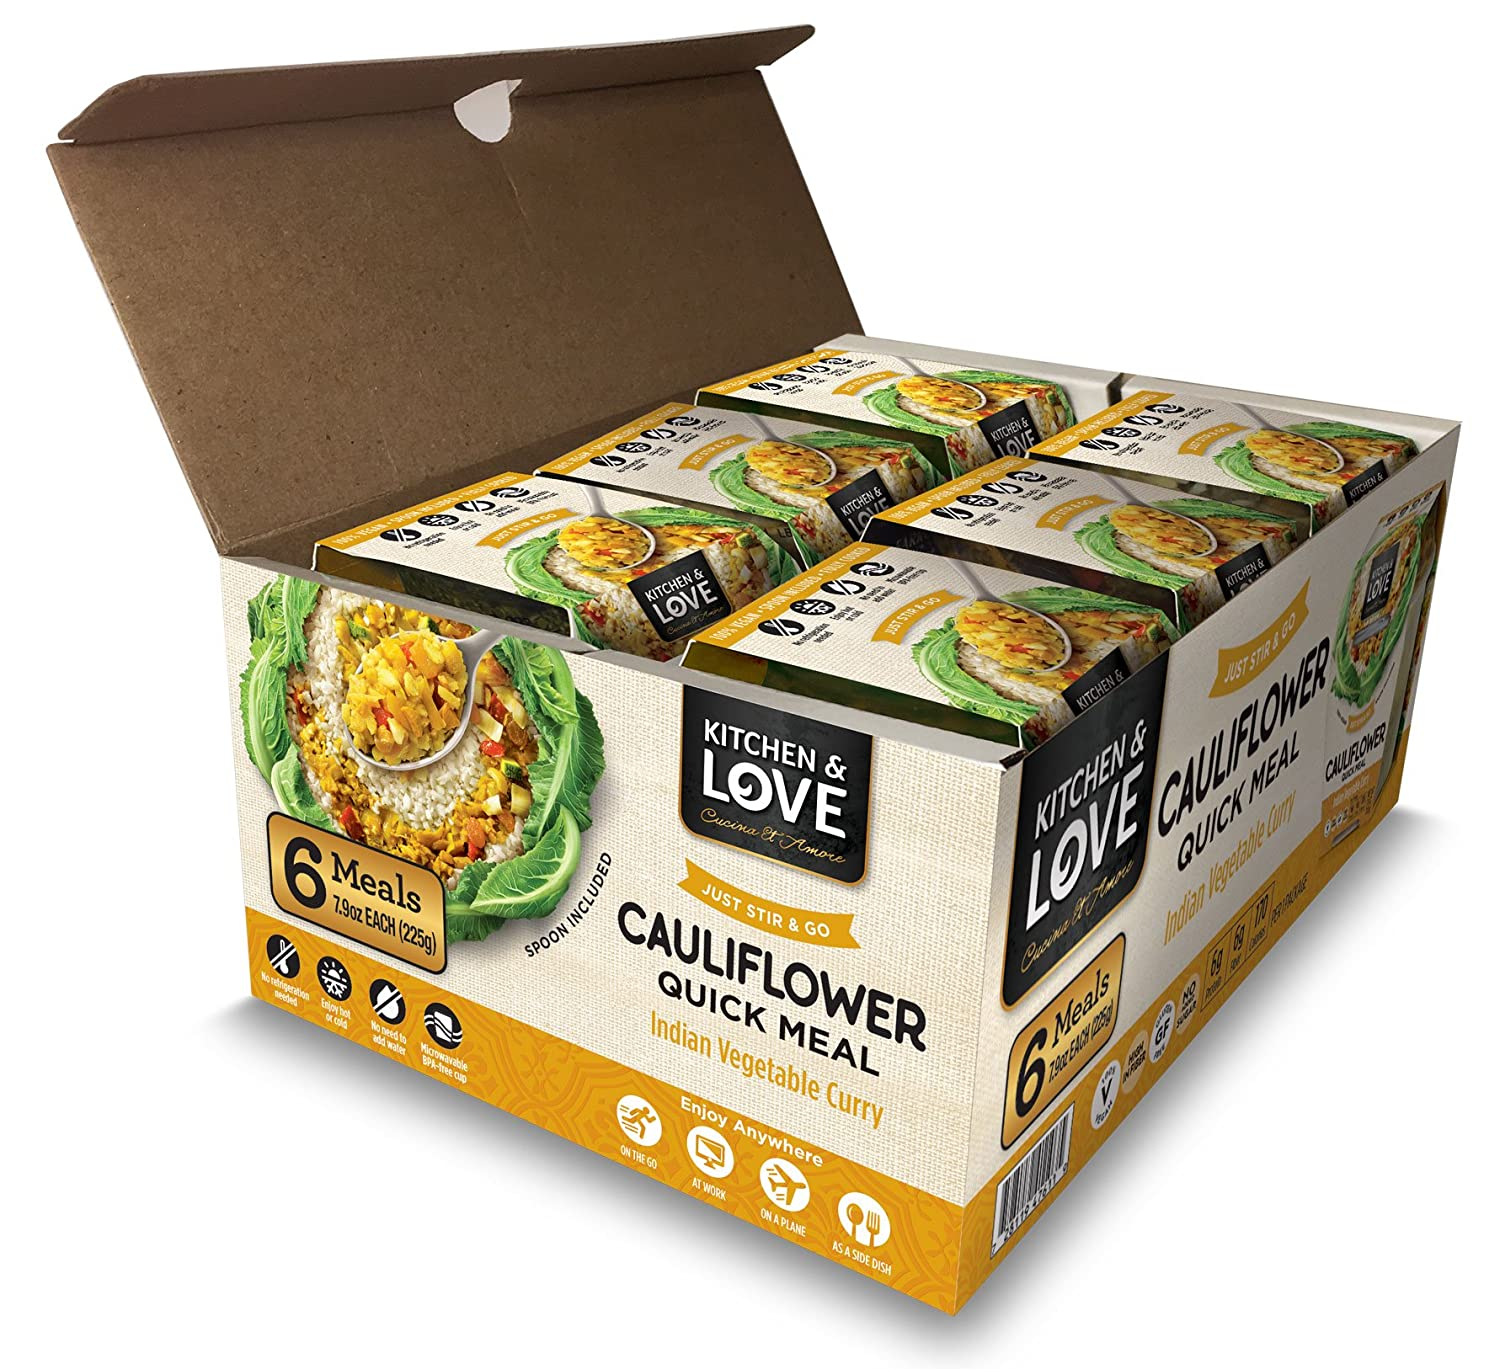 Kitchen & Love Indian Vegetable Curry Cauliflower Quick Meal 6-Pack | Vegan, Gluten-Free, Keto, Ready-to-Eat, No Refrigeration Required